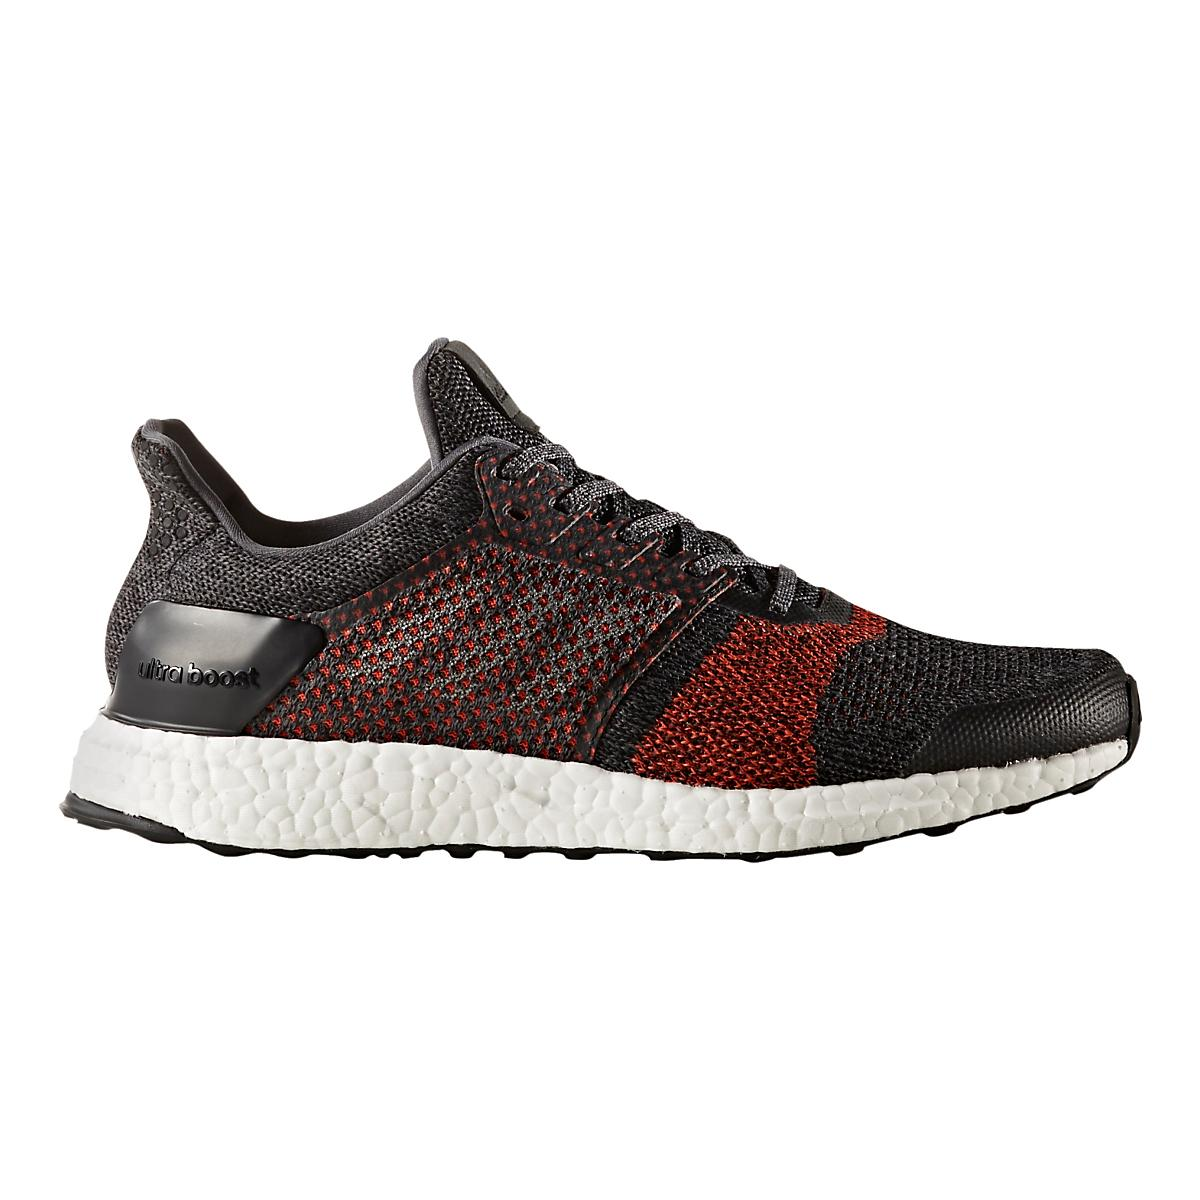 47ba034d6a346e ... germany mens adidas ultra boost st running shoe at road runner sports  2b91e 3bfdd